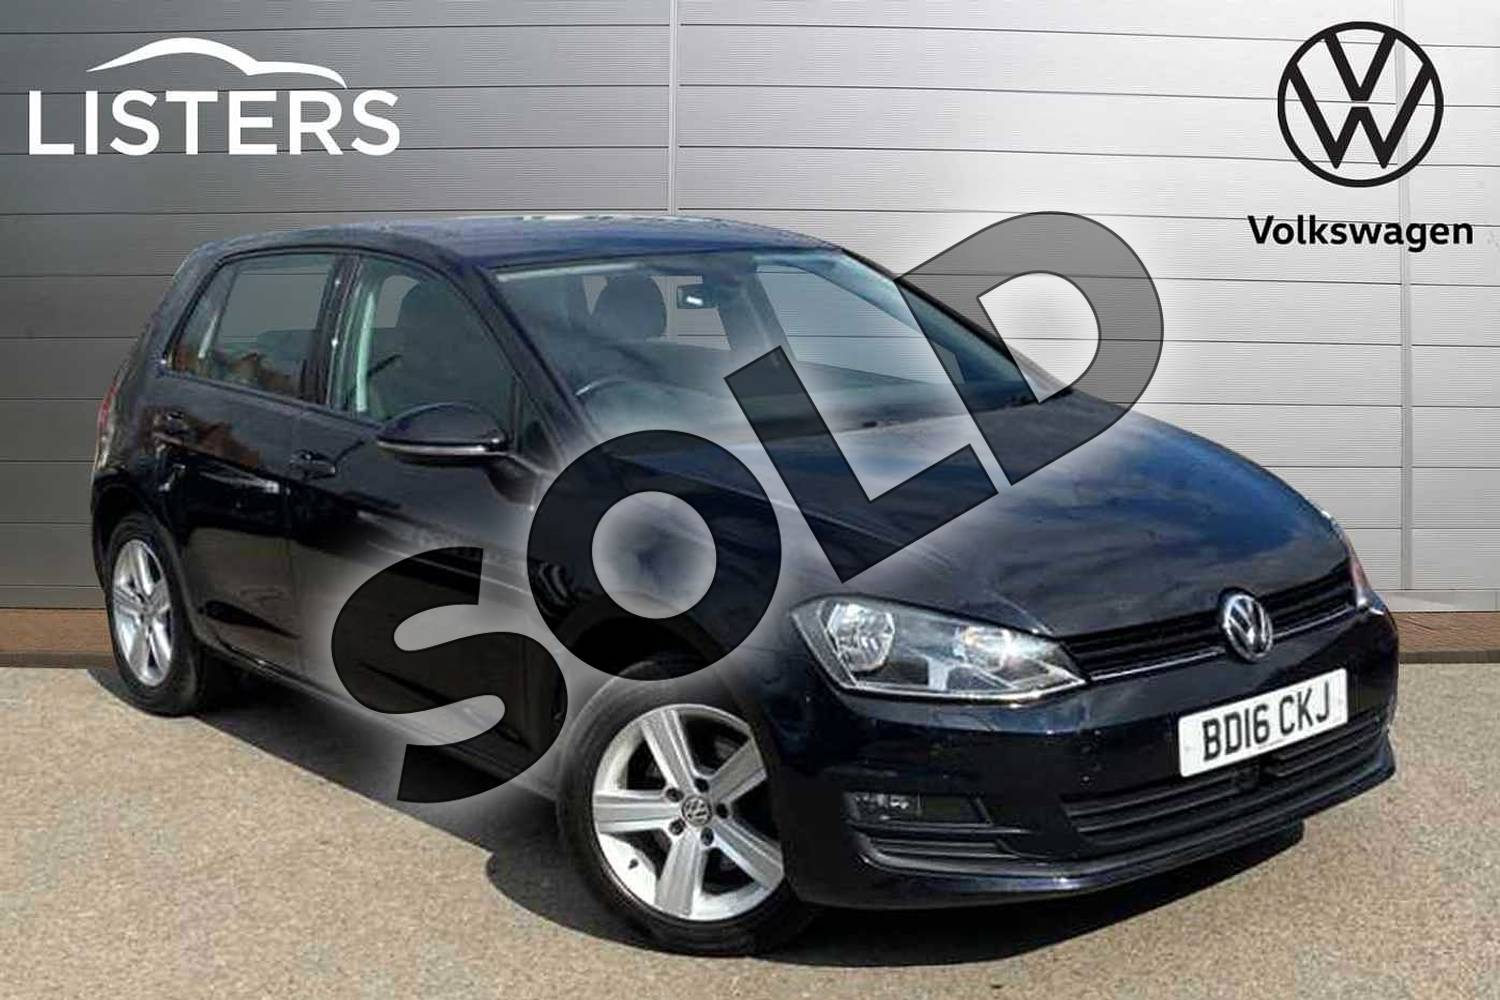 2016 Volkswagen Golf Diesel Hatchback 2.0 TDI Match Edition 5dr in Deep Black Pearl Effect at Listers Volkswagen Coventry